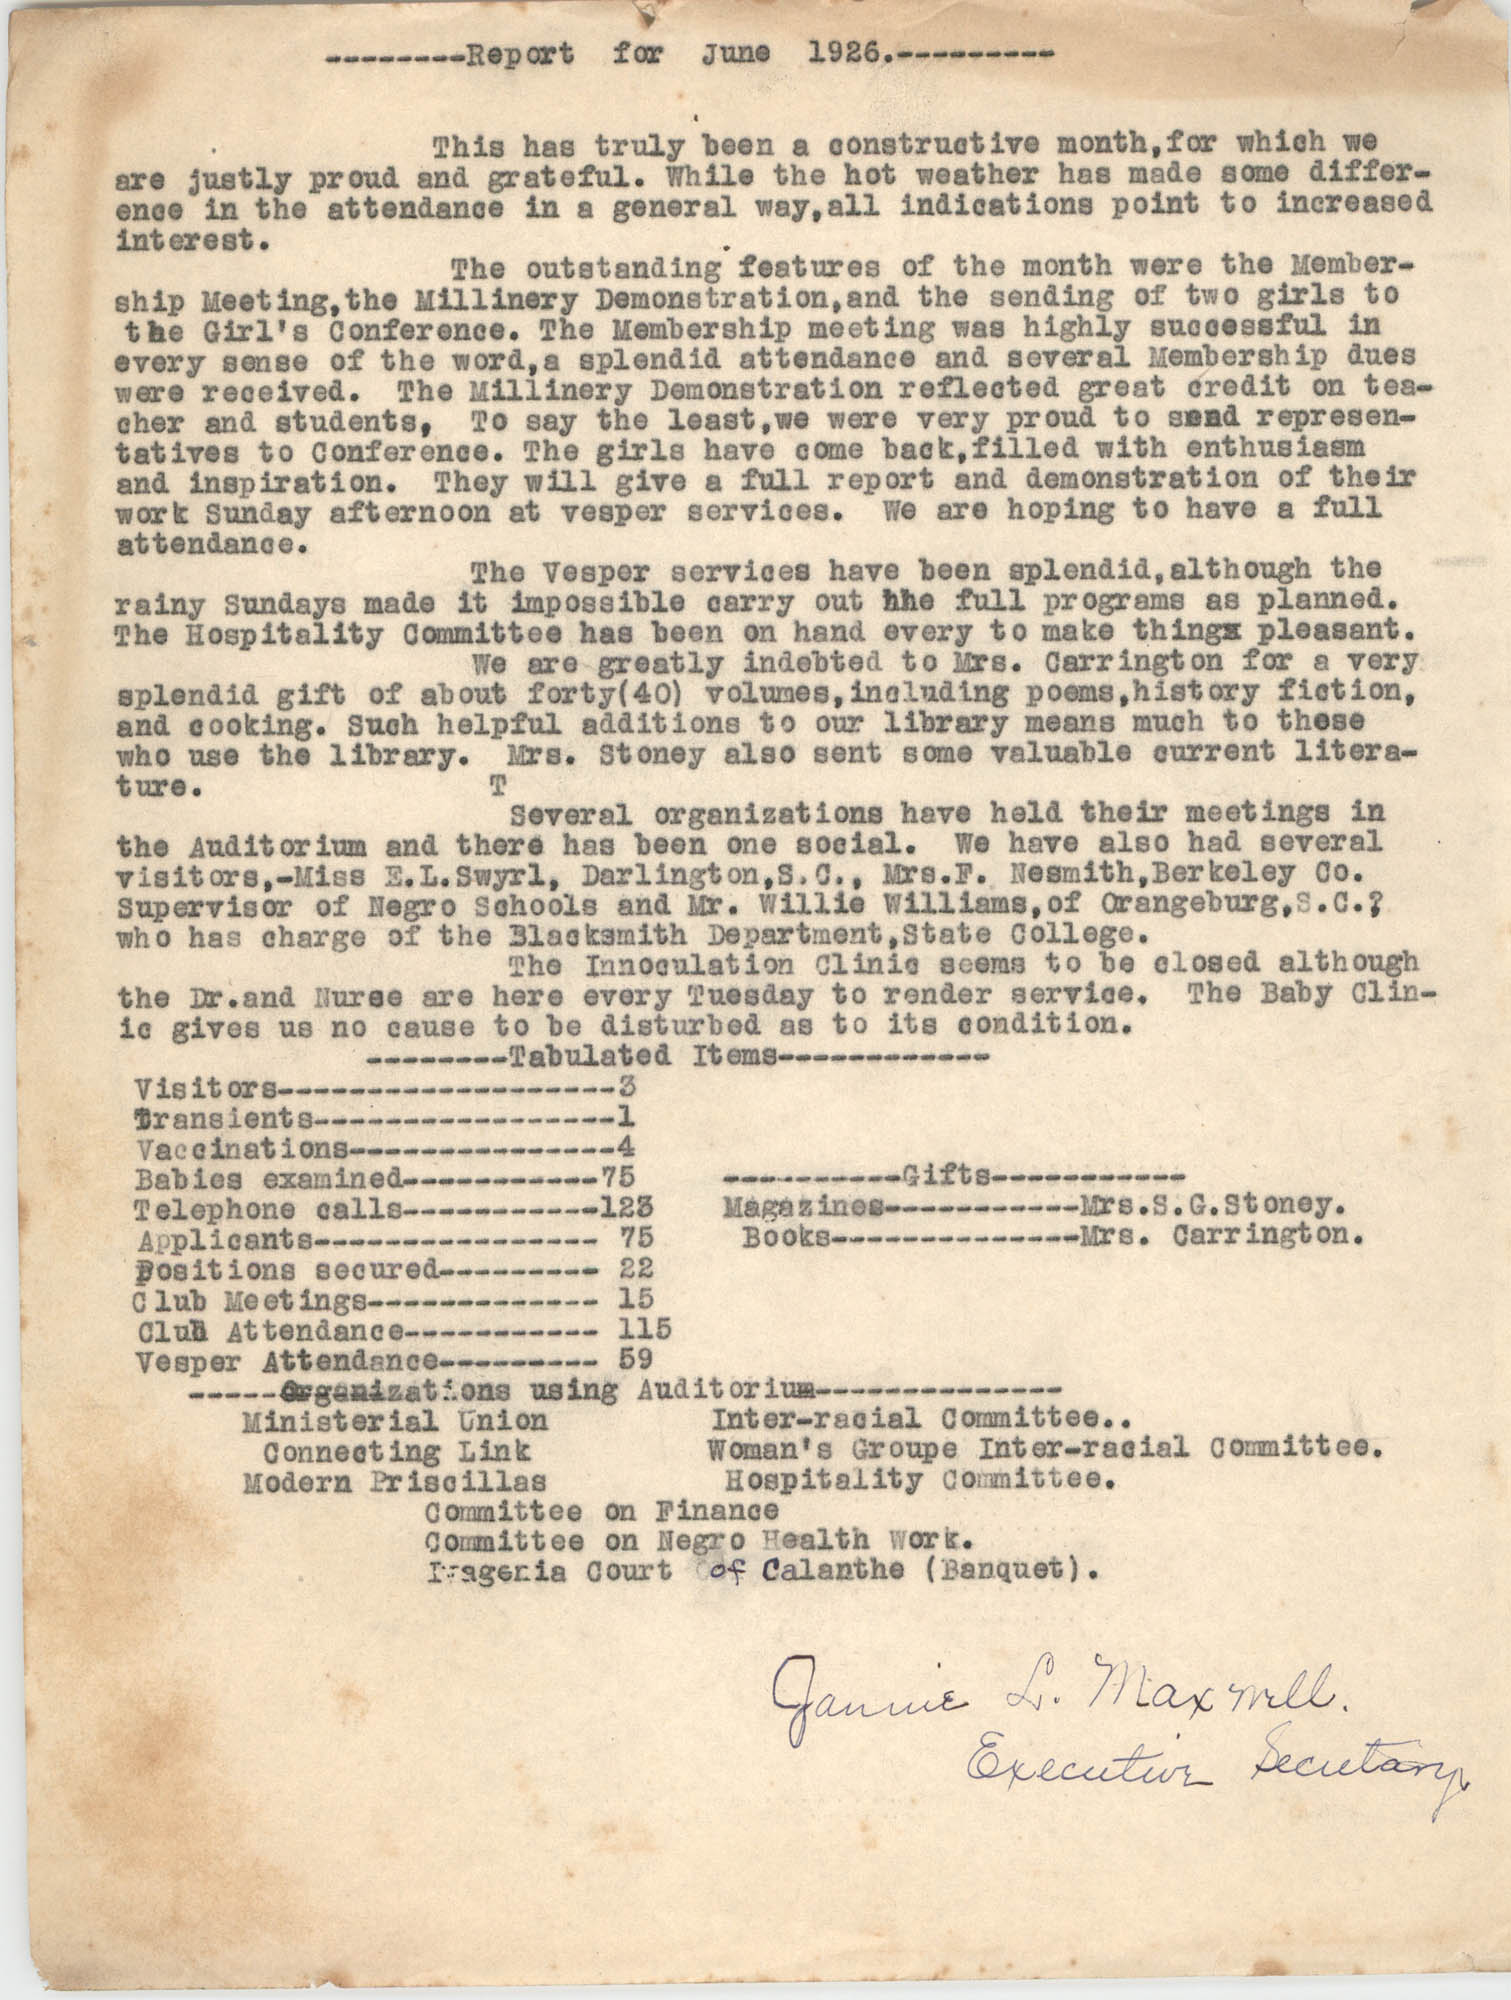 Monthly Report for the Coming Street Y.W.C.A., June 1926